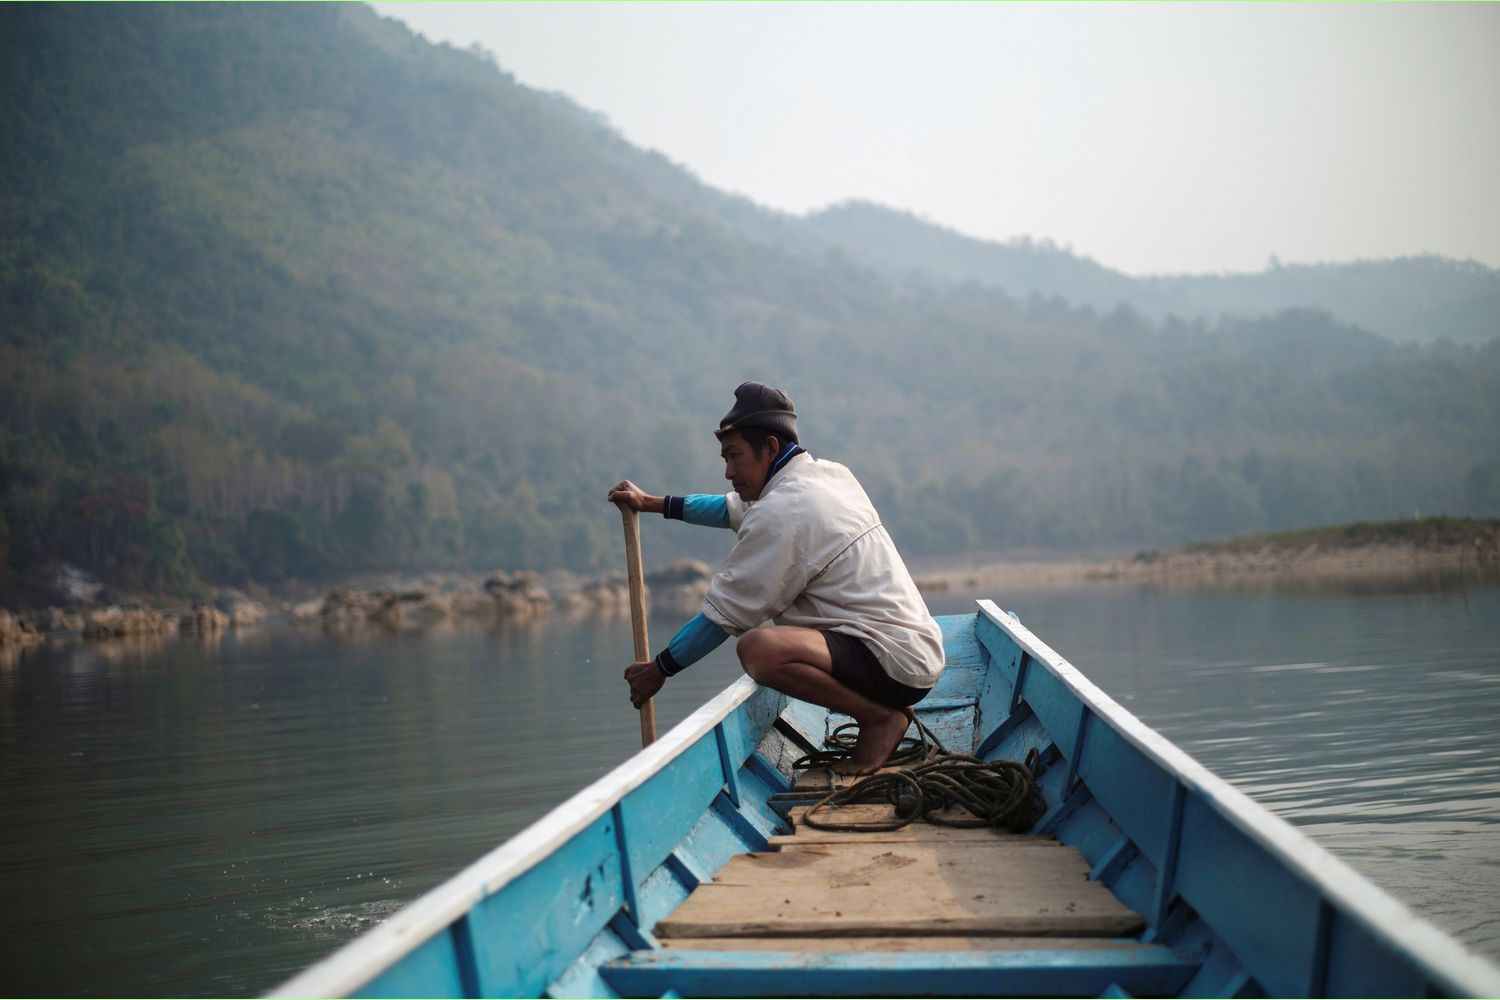 A local villager drives a boat where the future site of the Luang Prabang dam will be on the Mekong River, outskirt of Luang Prabang province, Laos, in February. (Reuters photo)